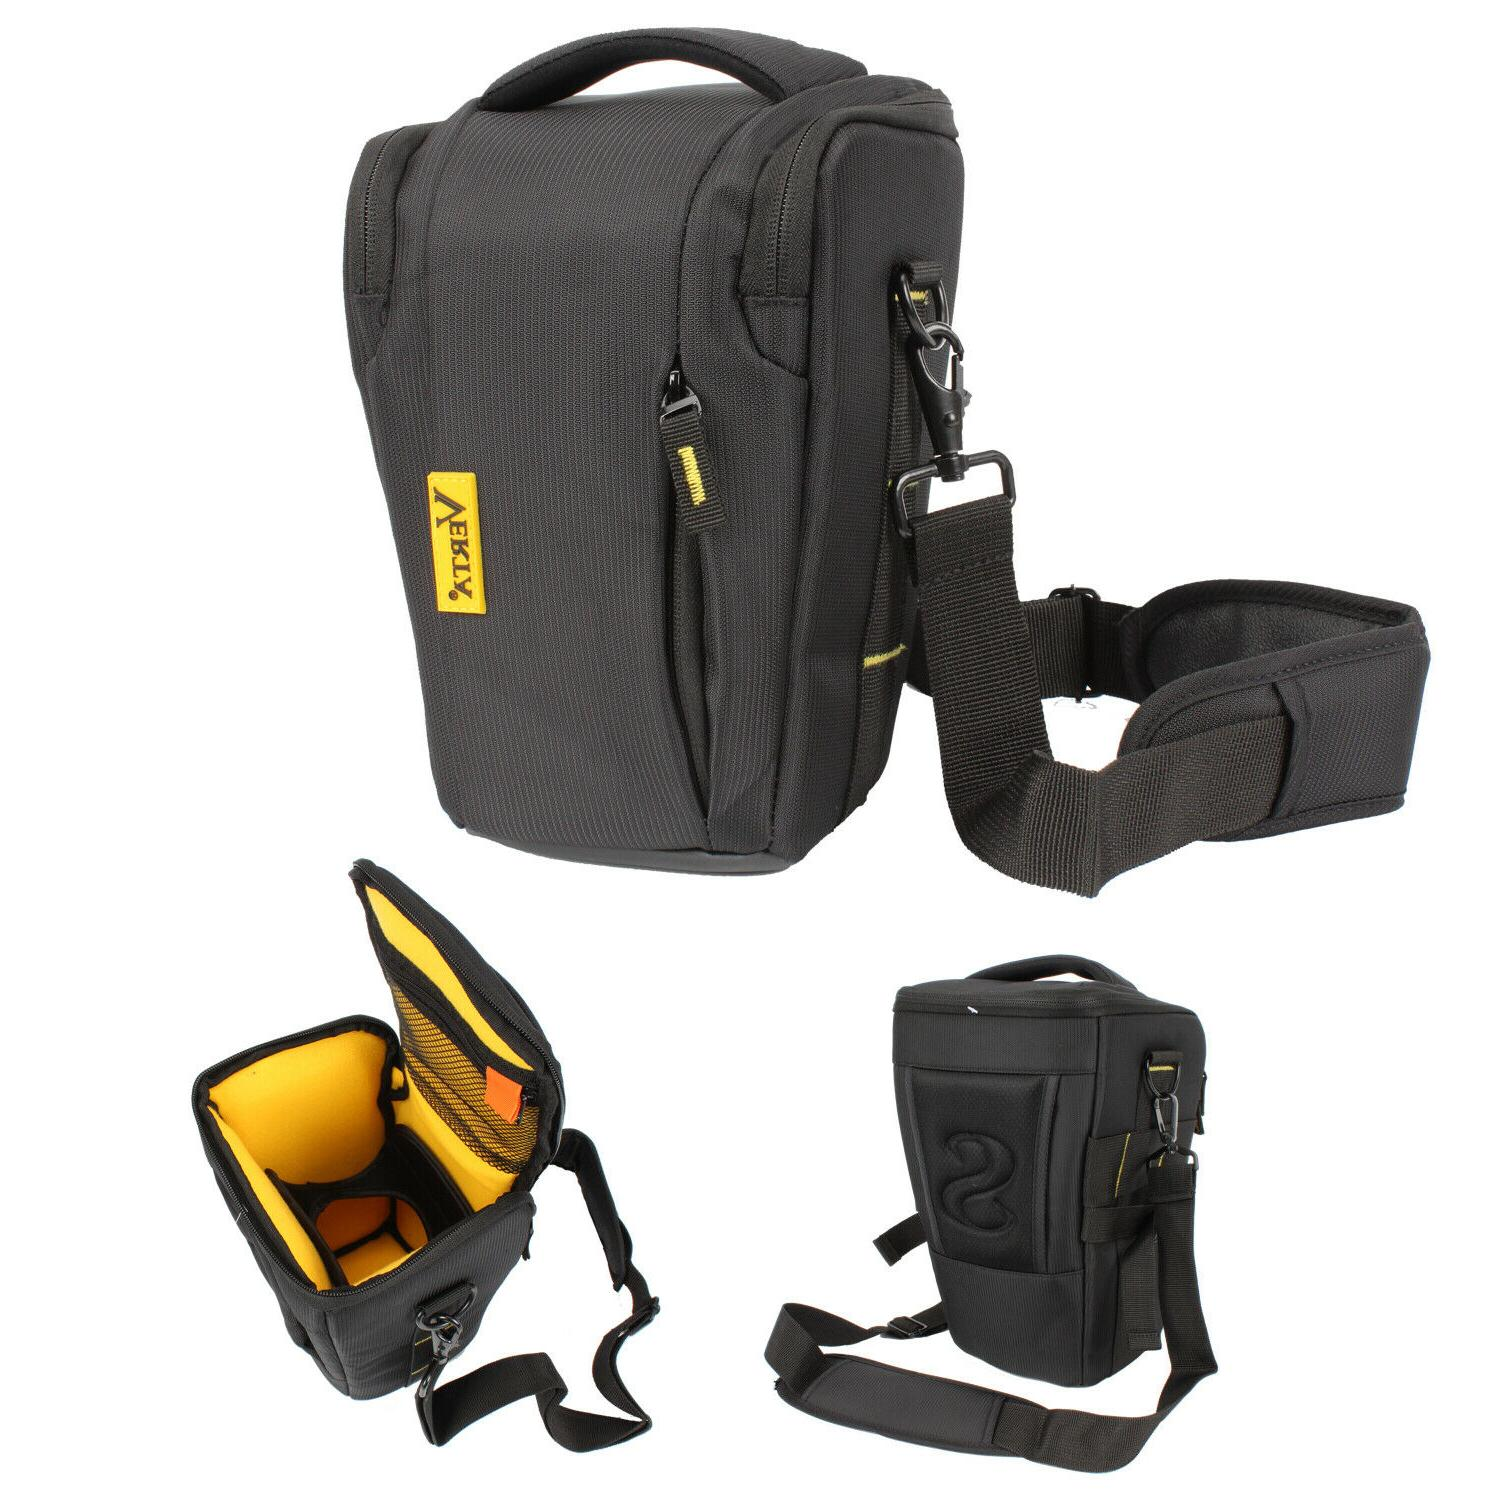 top load holster camera bag compact large